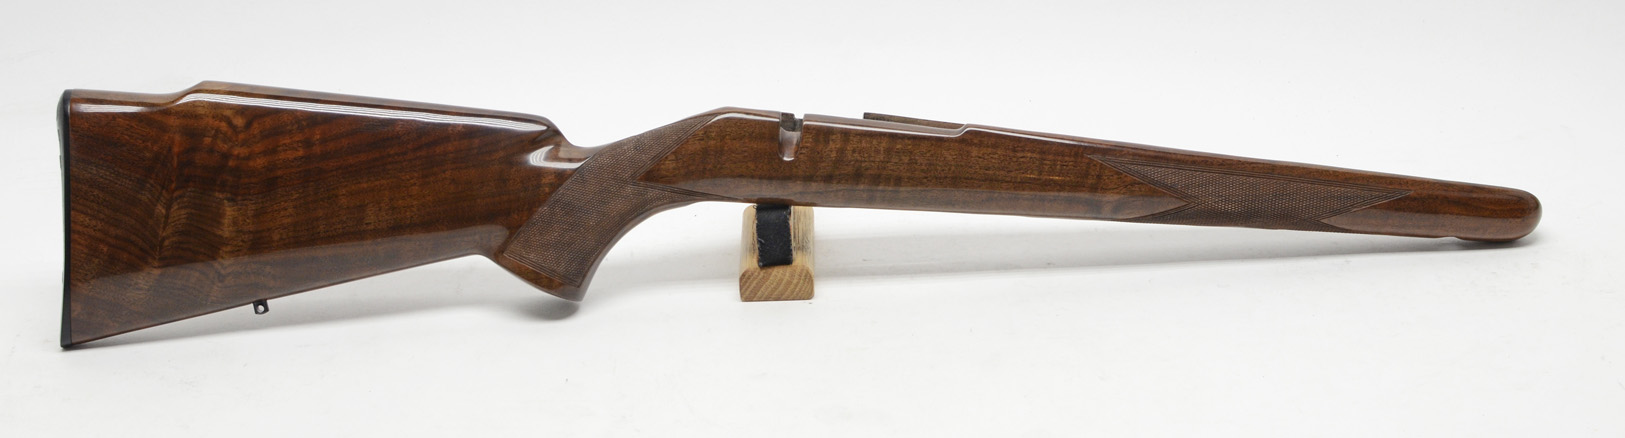 Browning Safari Stock